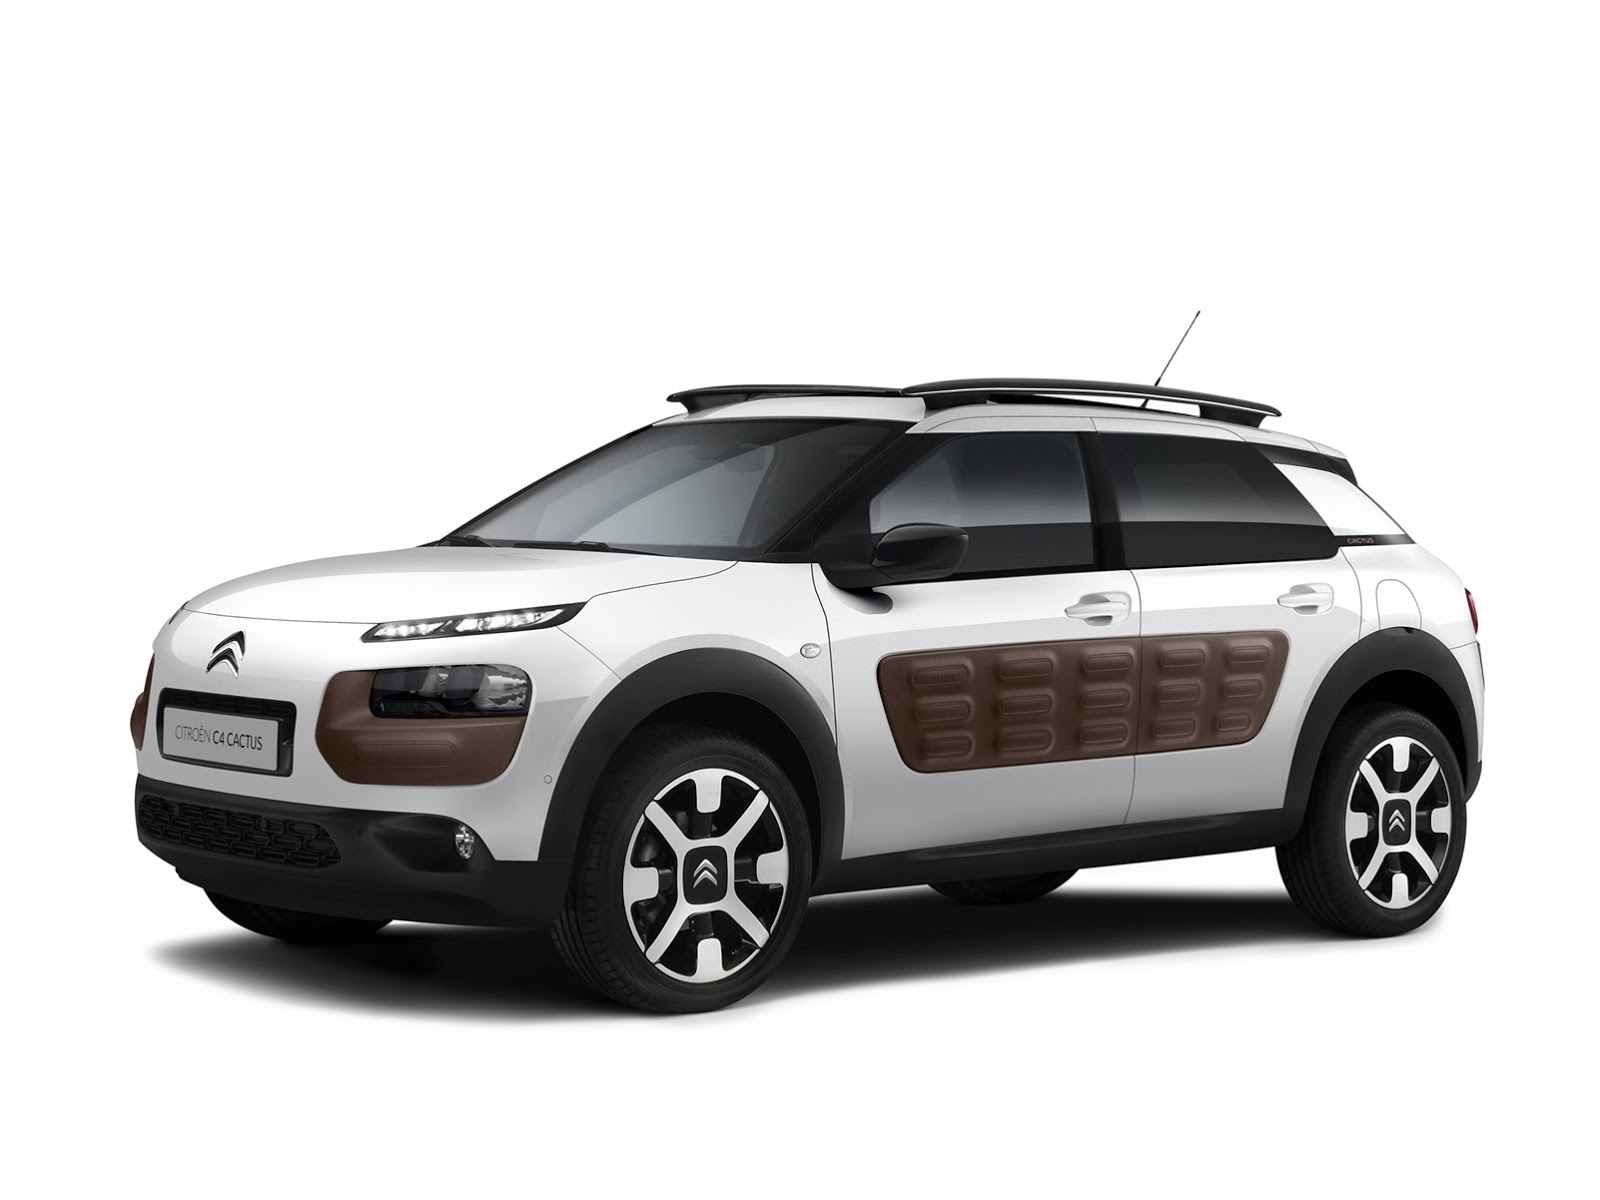 Citroen C4 Cactus Interior and Exterior Photos Leaked ...